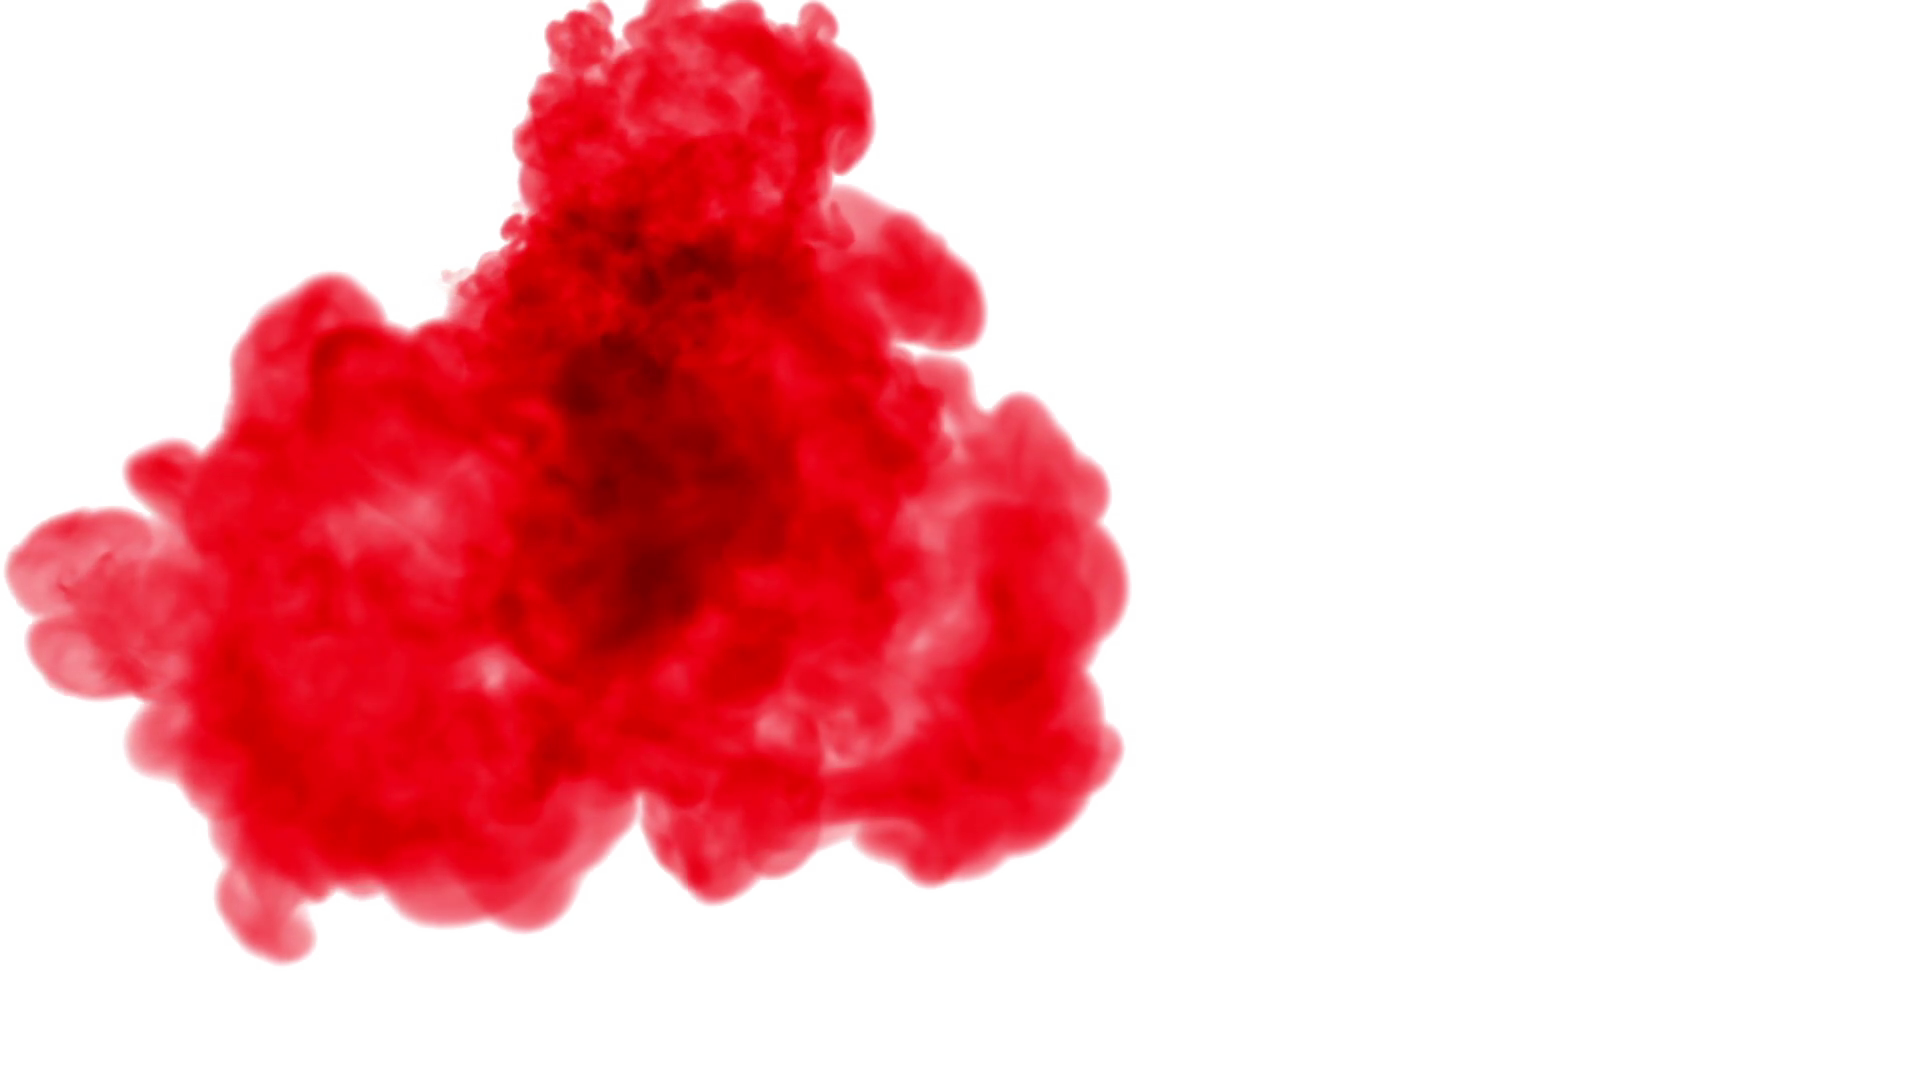 Background image peoplepng com. Red smoke png transparent stock